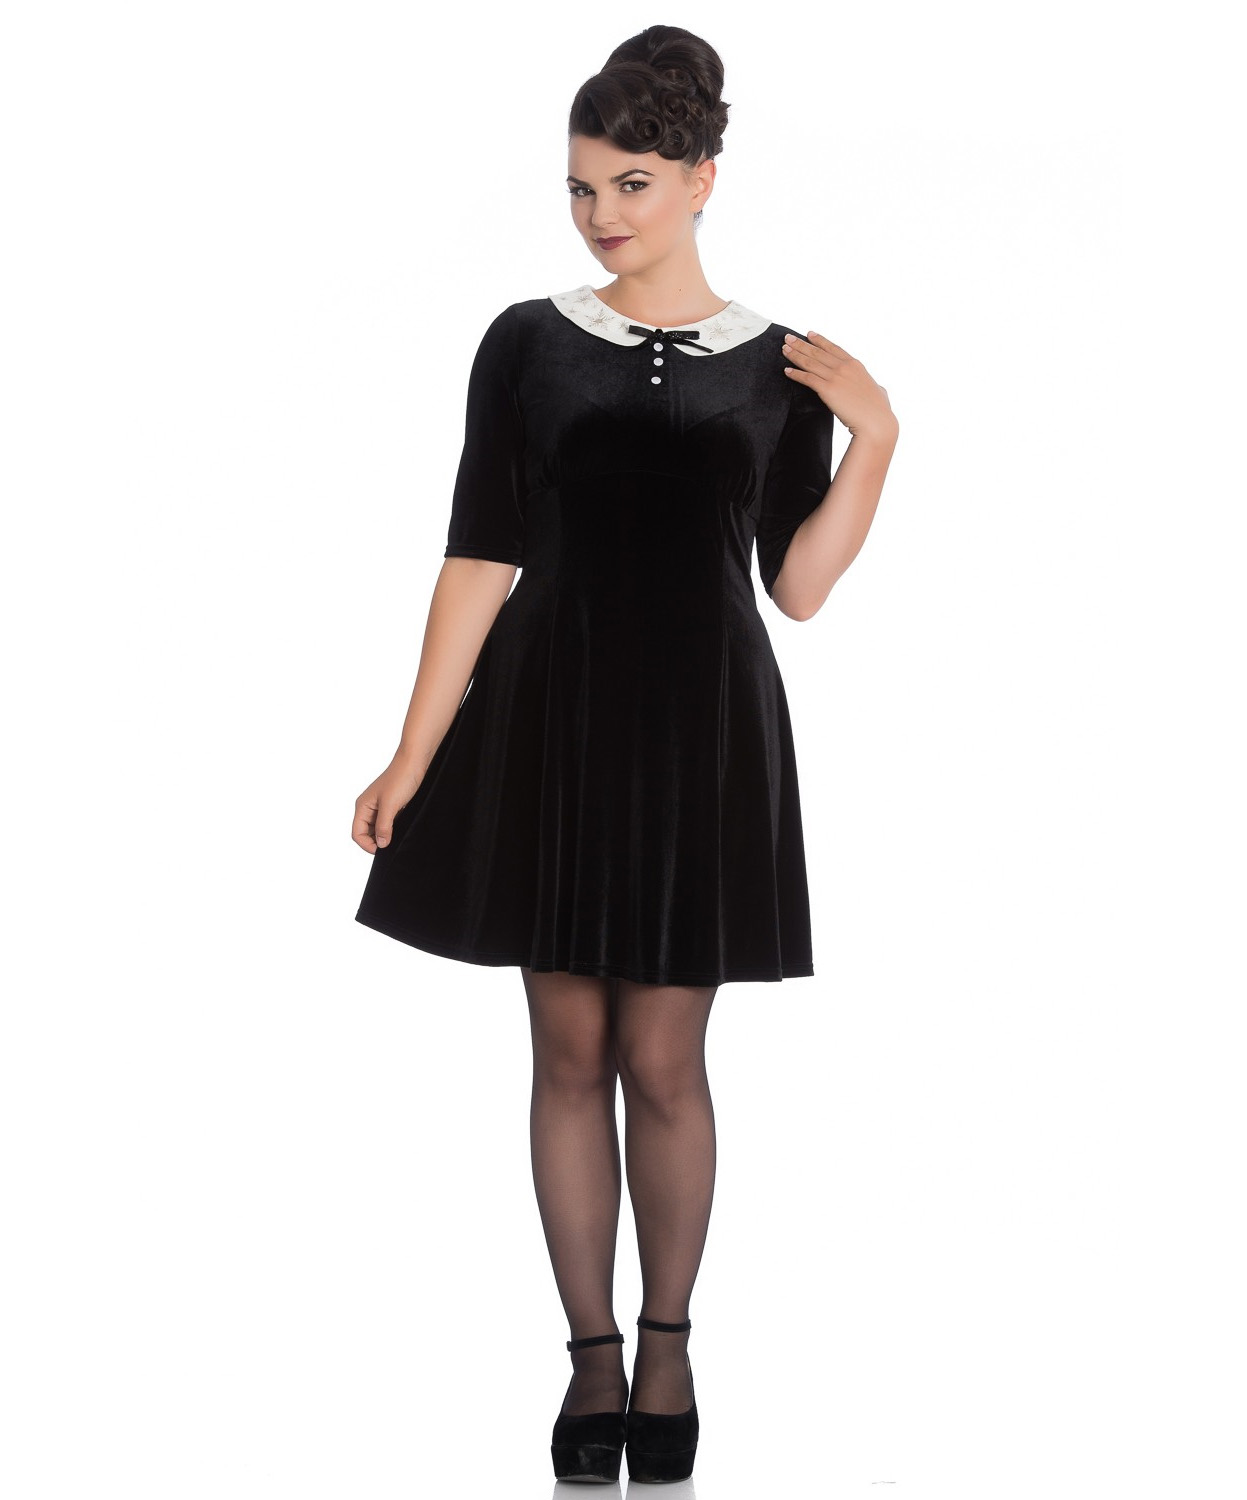 Hell-Bunny-Mini-Skater-Dress-Festive-Christmas-SNOWY-Black-Snowflakes-All-Sizes thumbnail 19